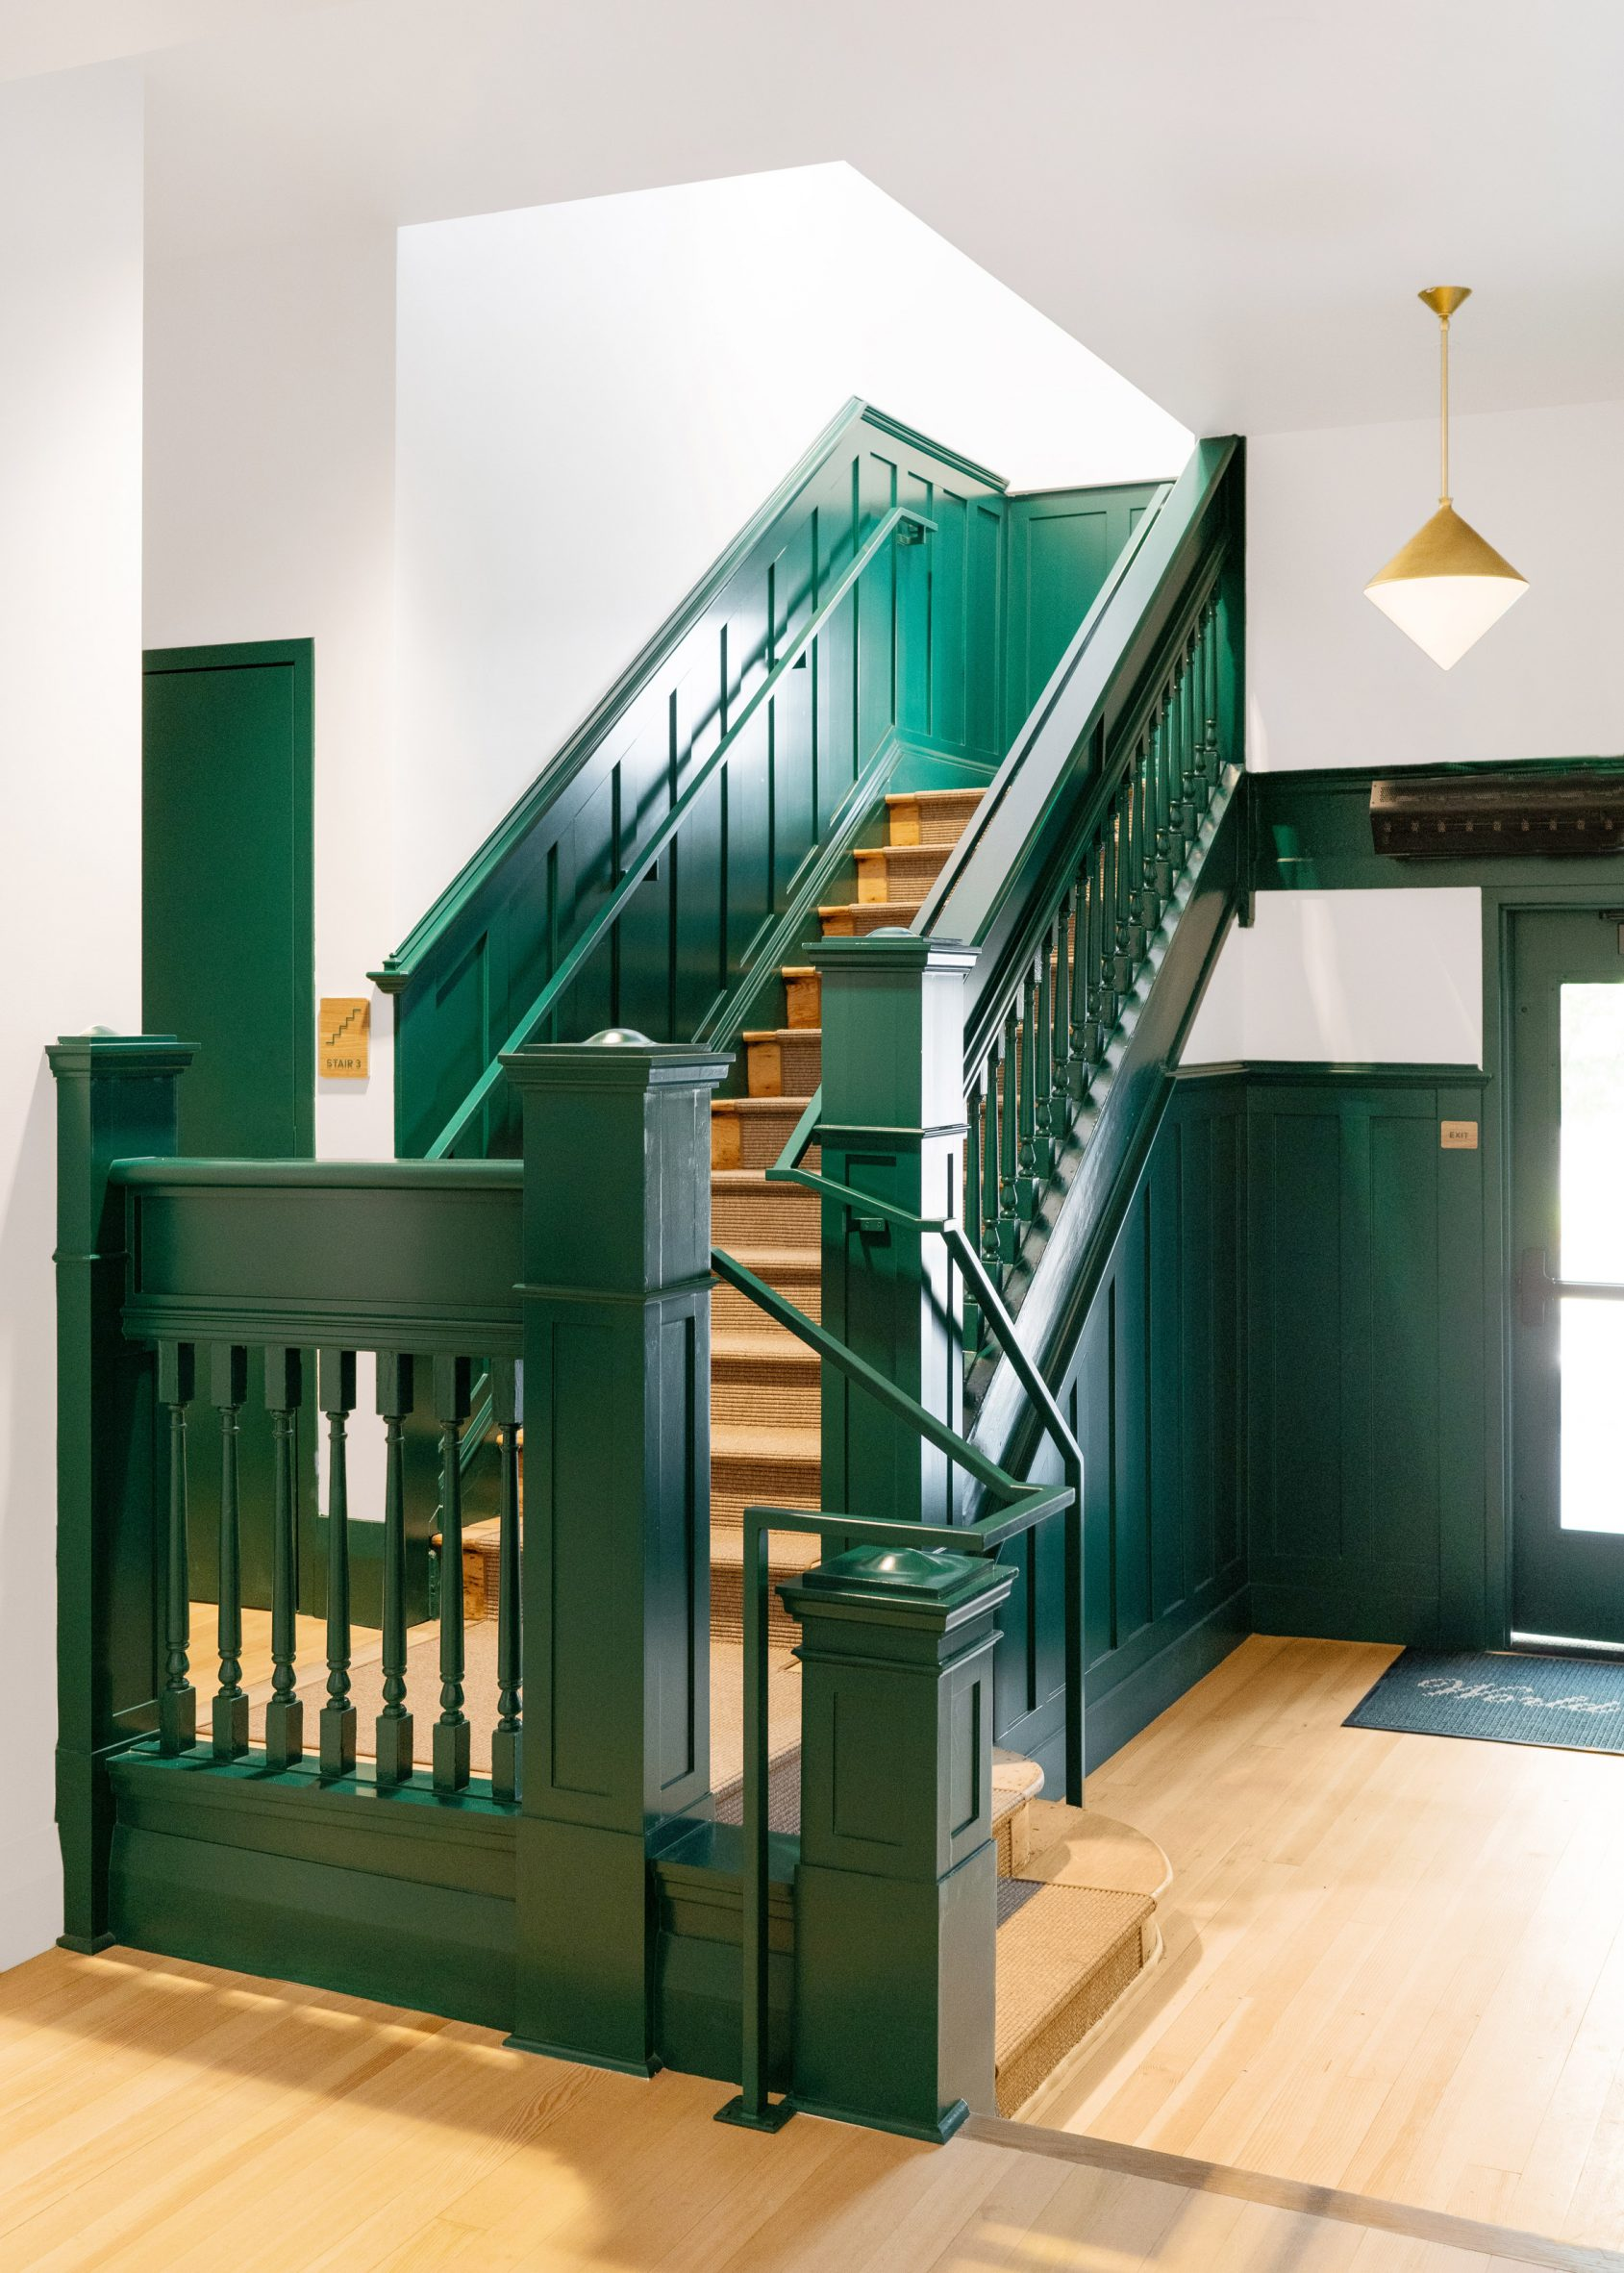 A traditional green staircase in the hotel